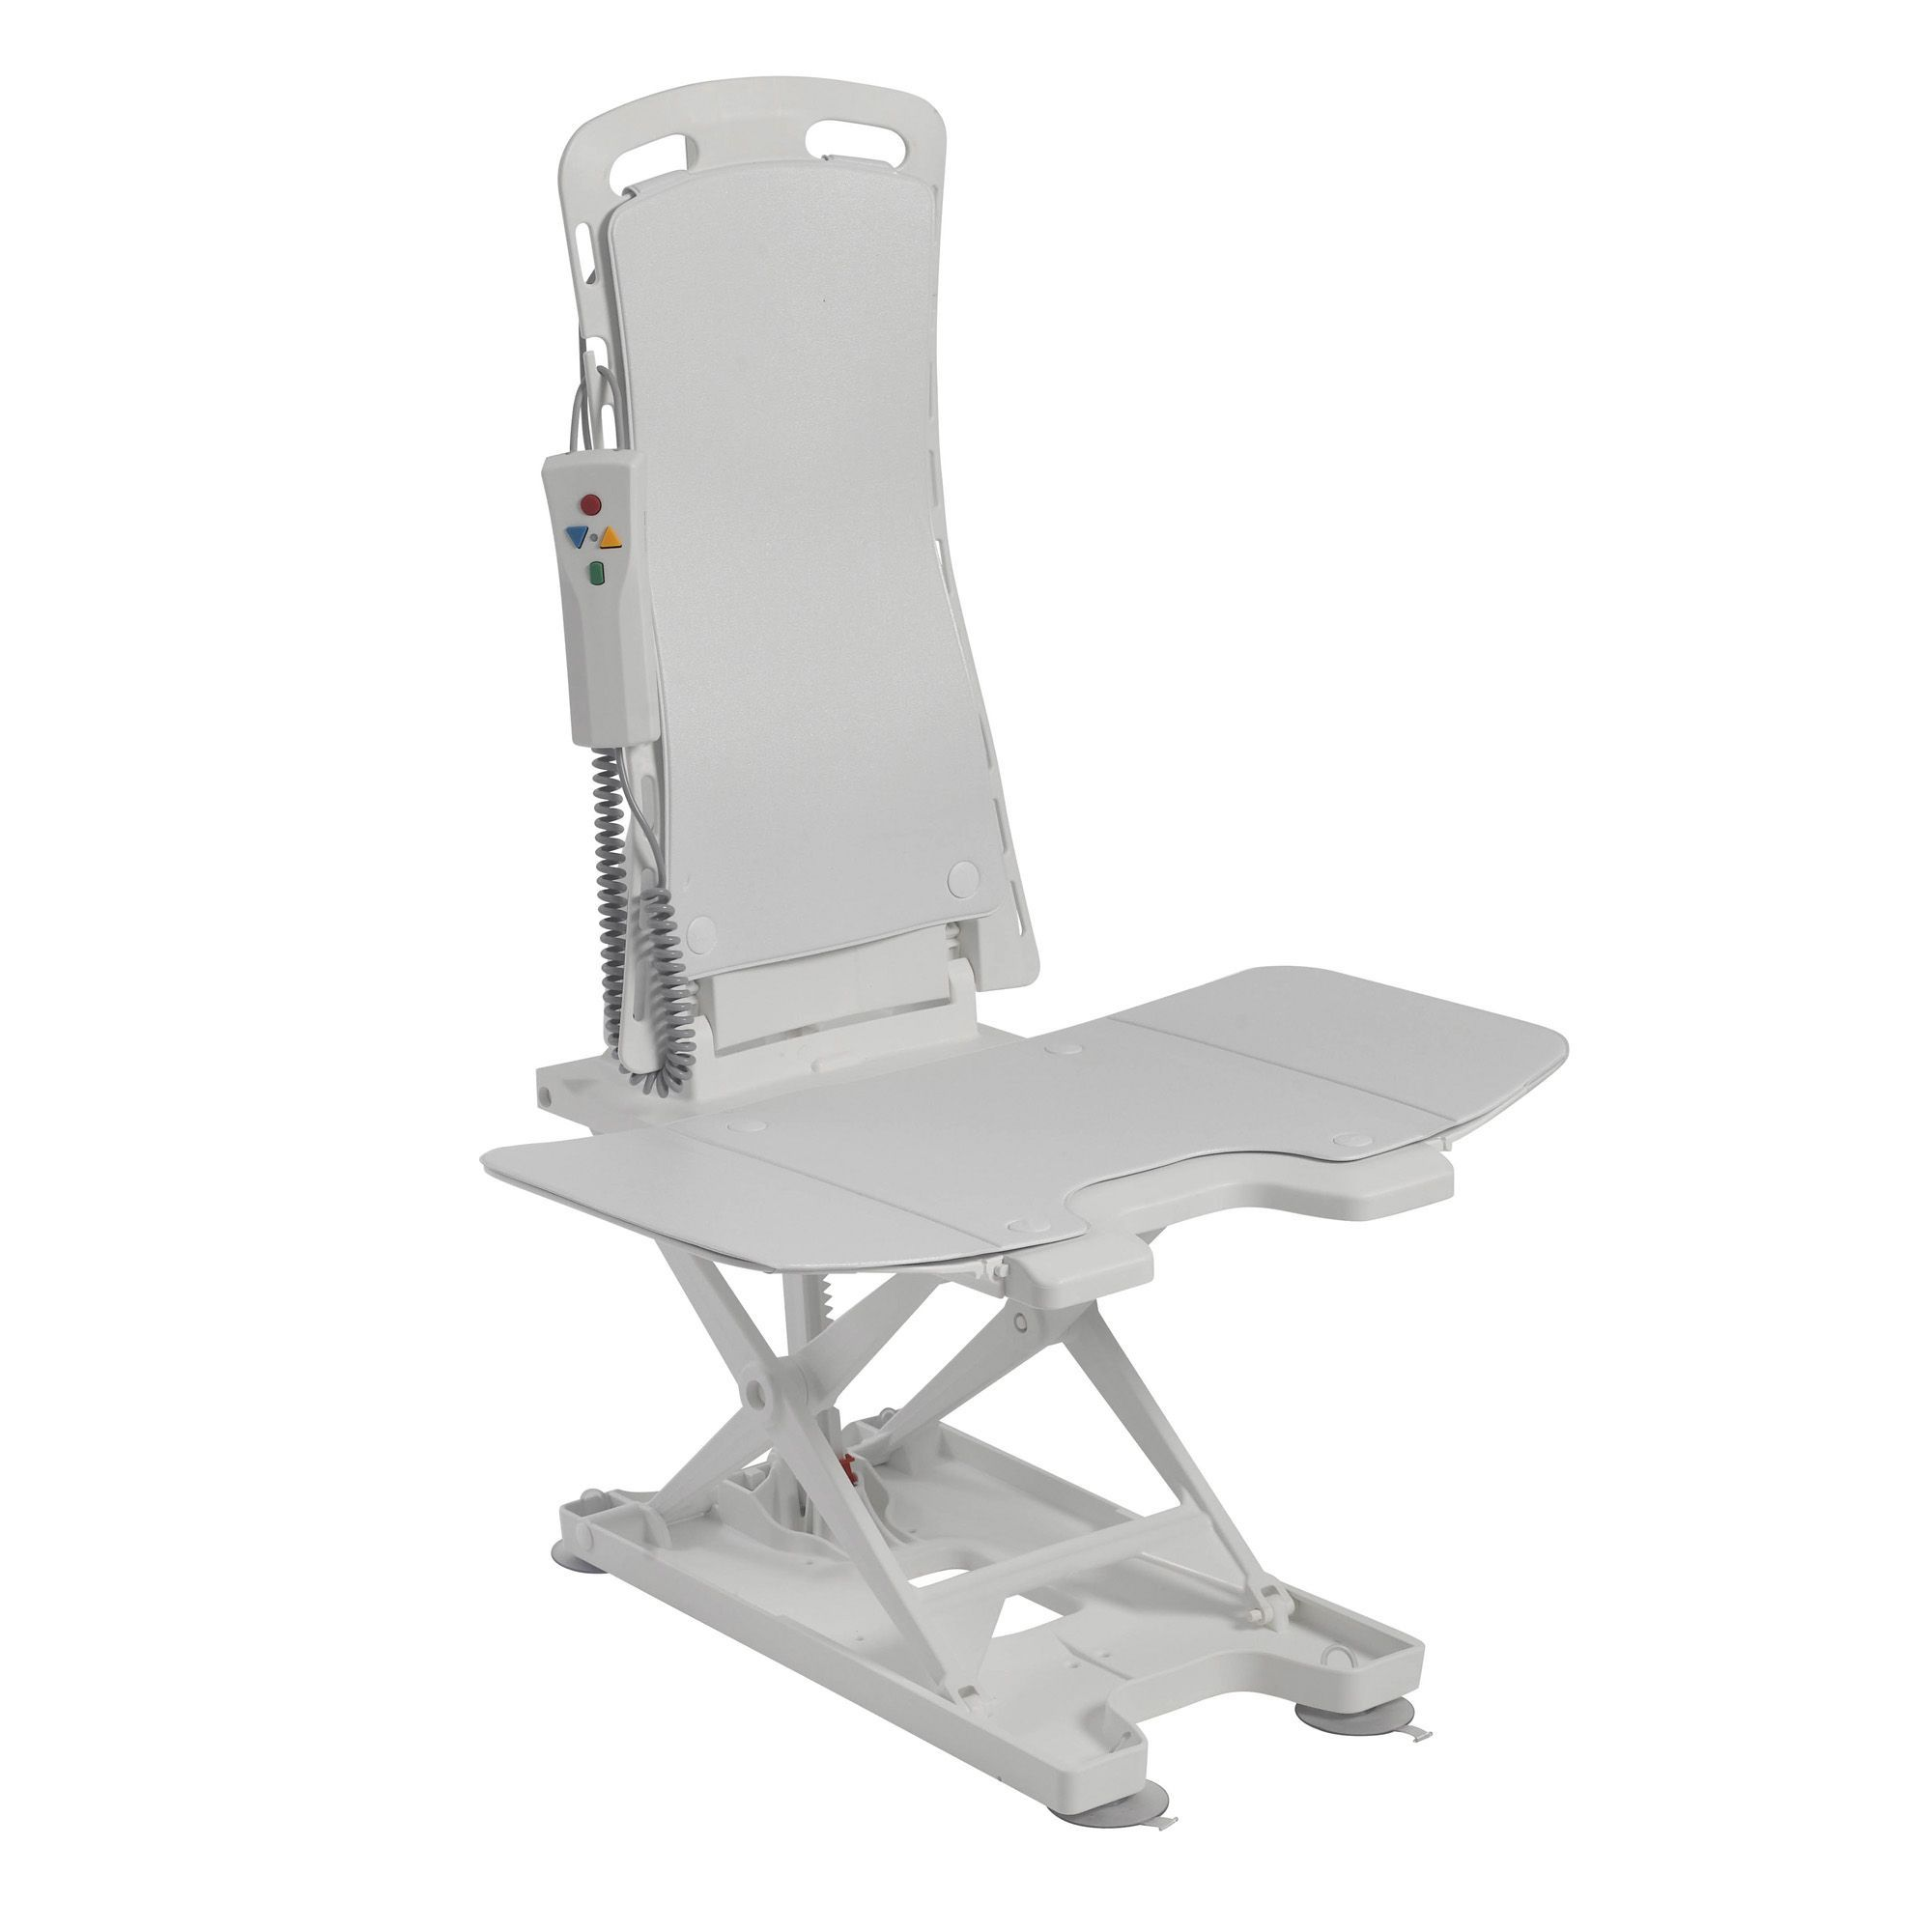 Drive Medical Auto Bath Tub Chair Seat Lift $740 $46.99 per month ...